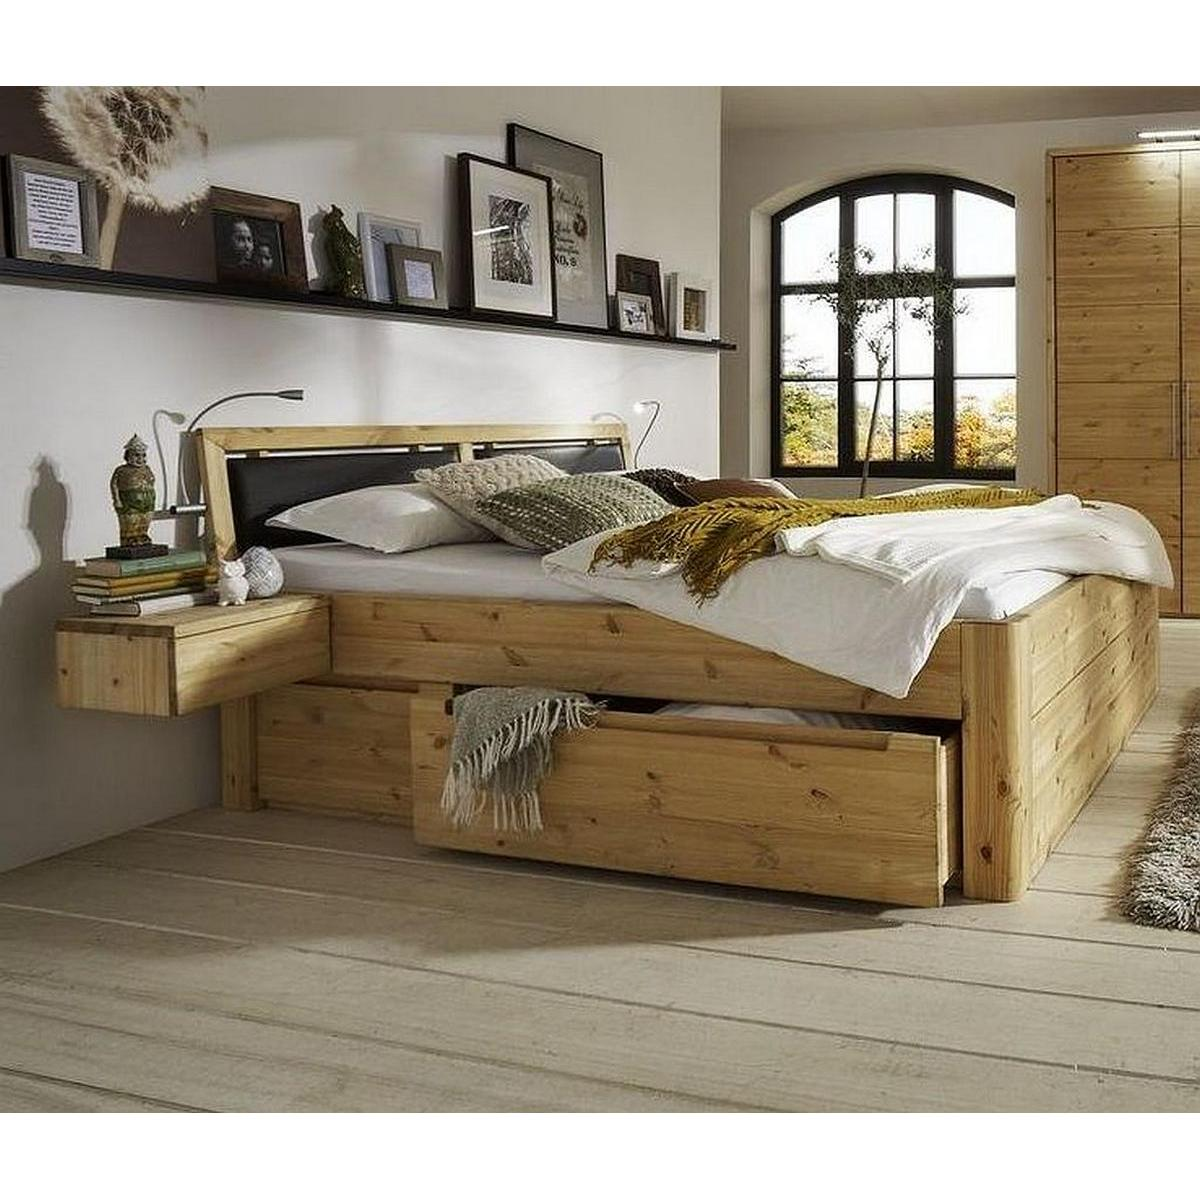 naturholz bett mit schubladen 160x200 komforth he 49 cm. Black Bedroom Furniture Sets. Home Design Ideas